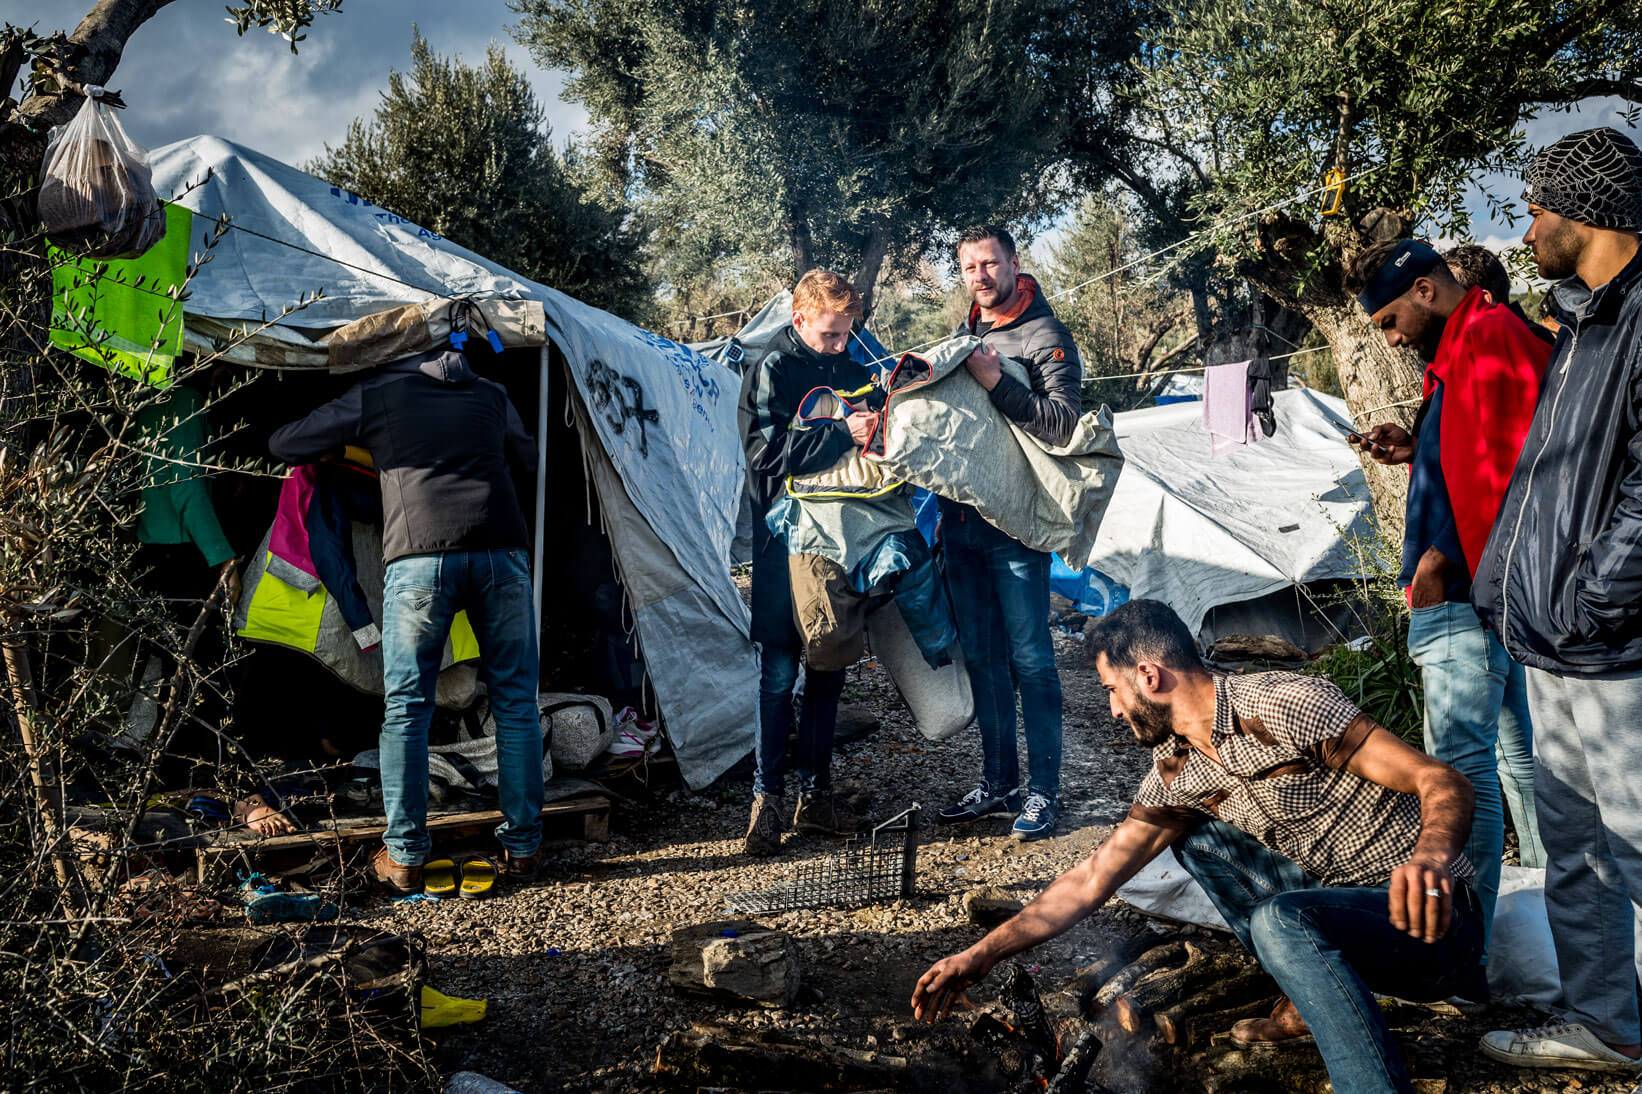 Corona: refugees in Moria fear a humanitarian disaster | Sheltersuit